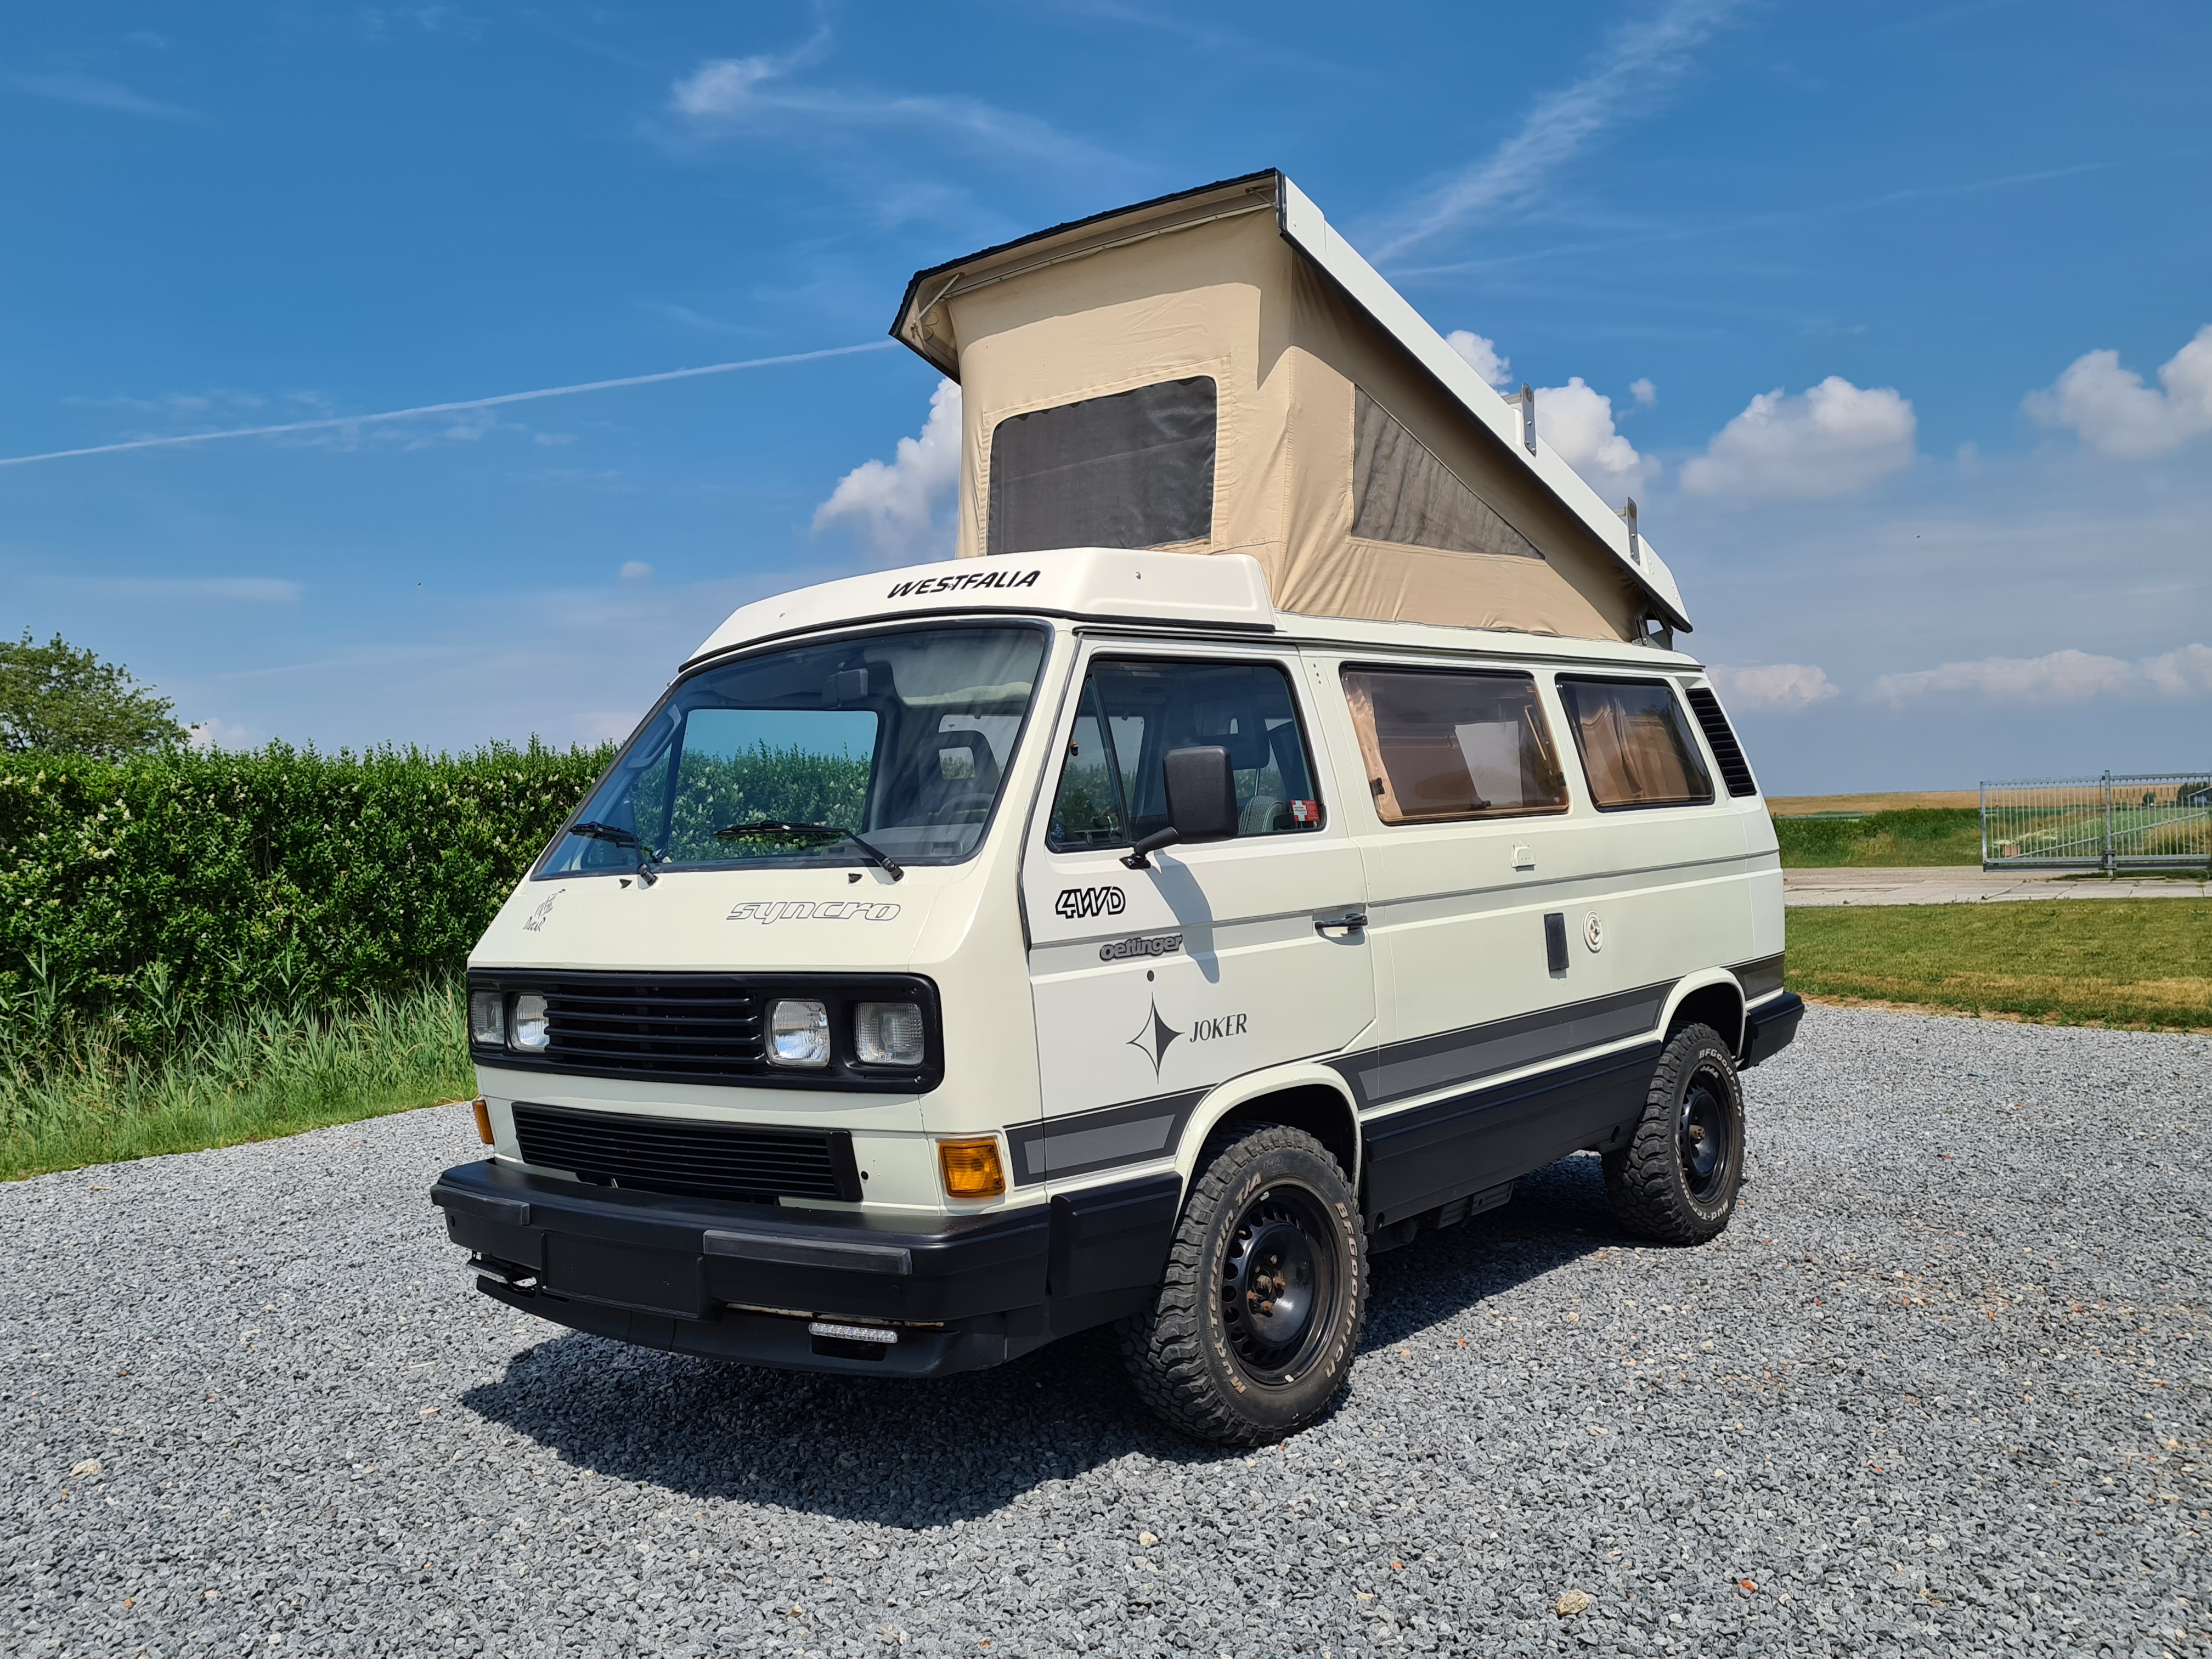 New Arrival T3 Westfalia Syncro Oettinger 1987 The Cool Vw T1 T2 T3 Vw Bus Klassieke Vw Bus Oldtimer Vw Bus Samba Vw Camper Spijlbus Baywindow Panoramabus Westfalia Camper T2b T2a